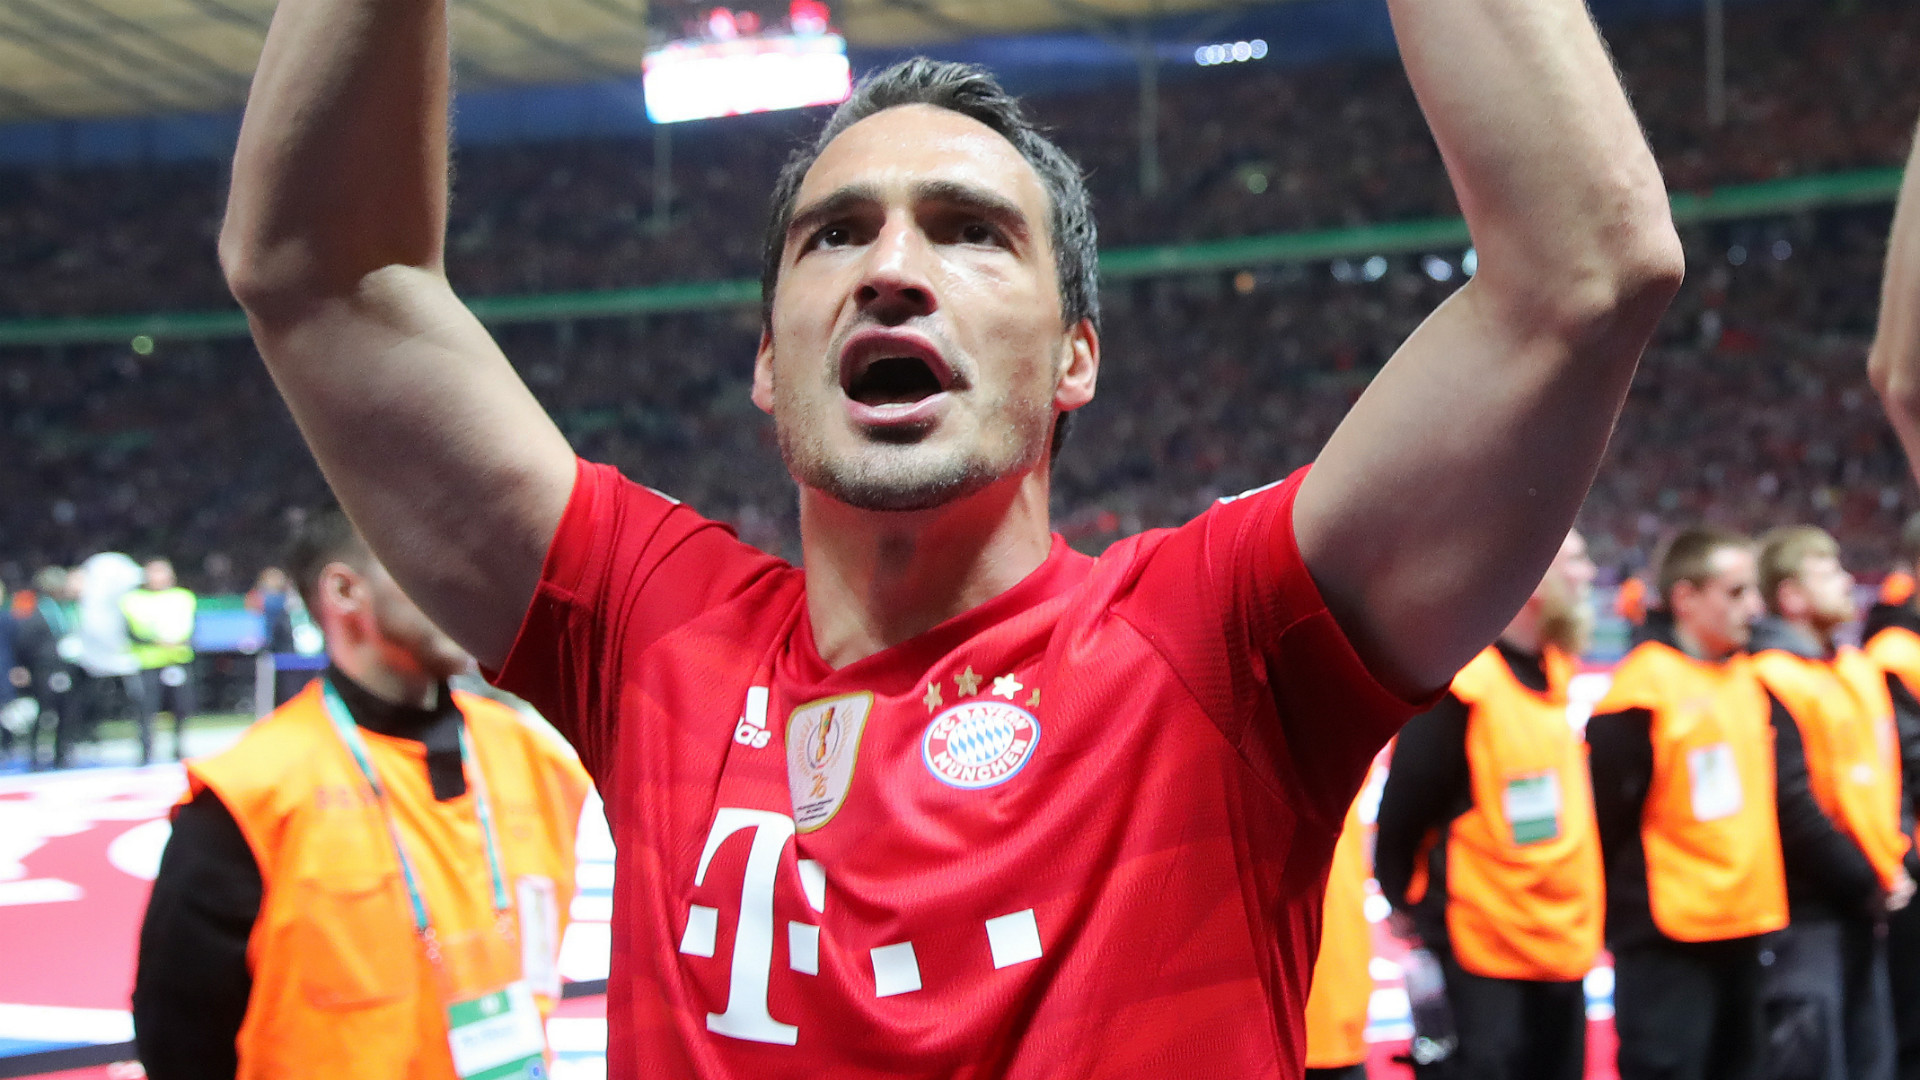 Mats Hummels: Bayern Munich agree to sell defender back to Borussia Dortmund